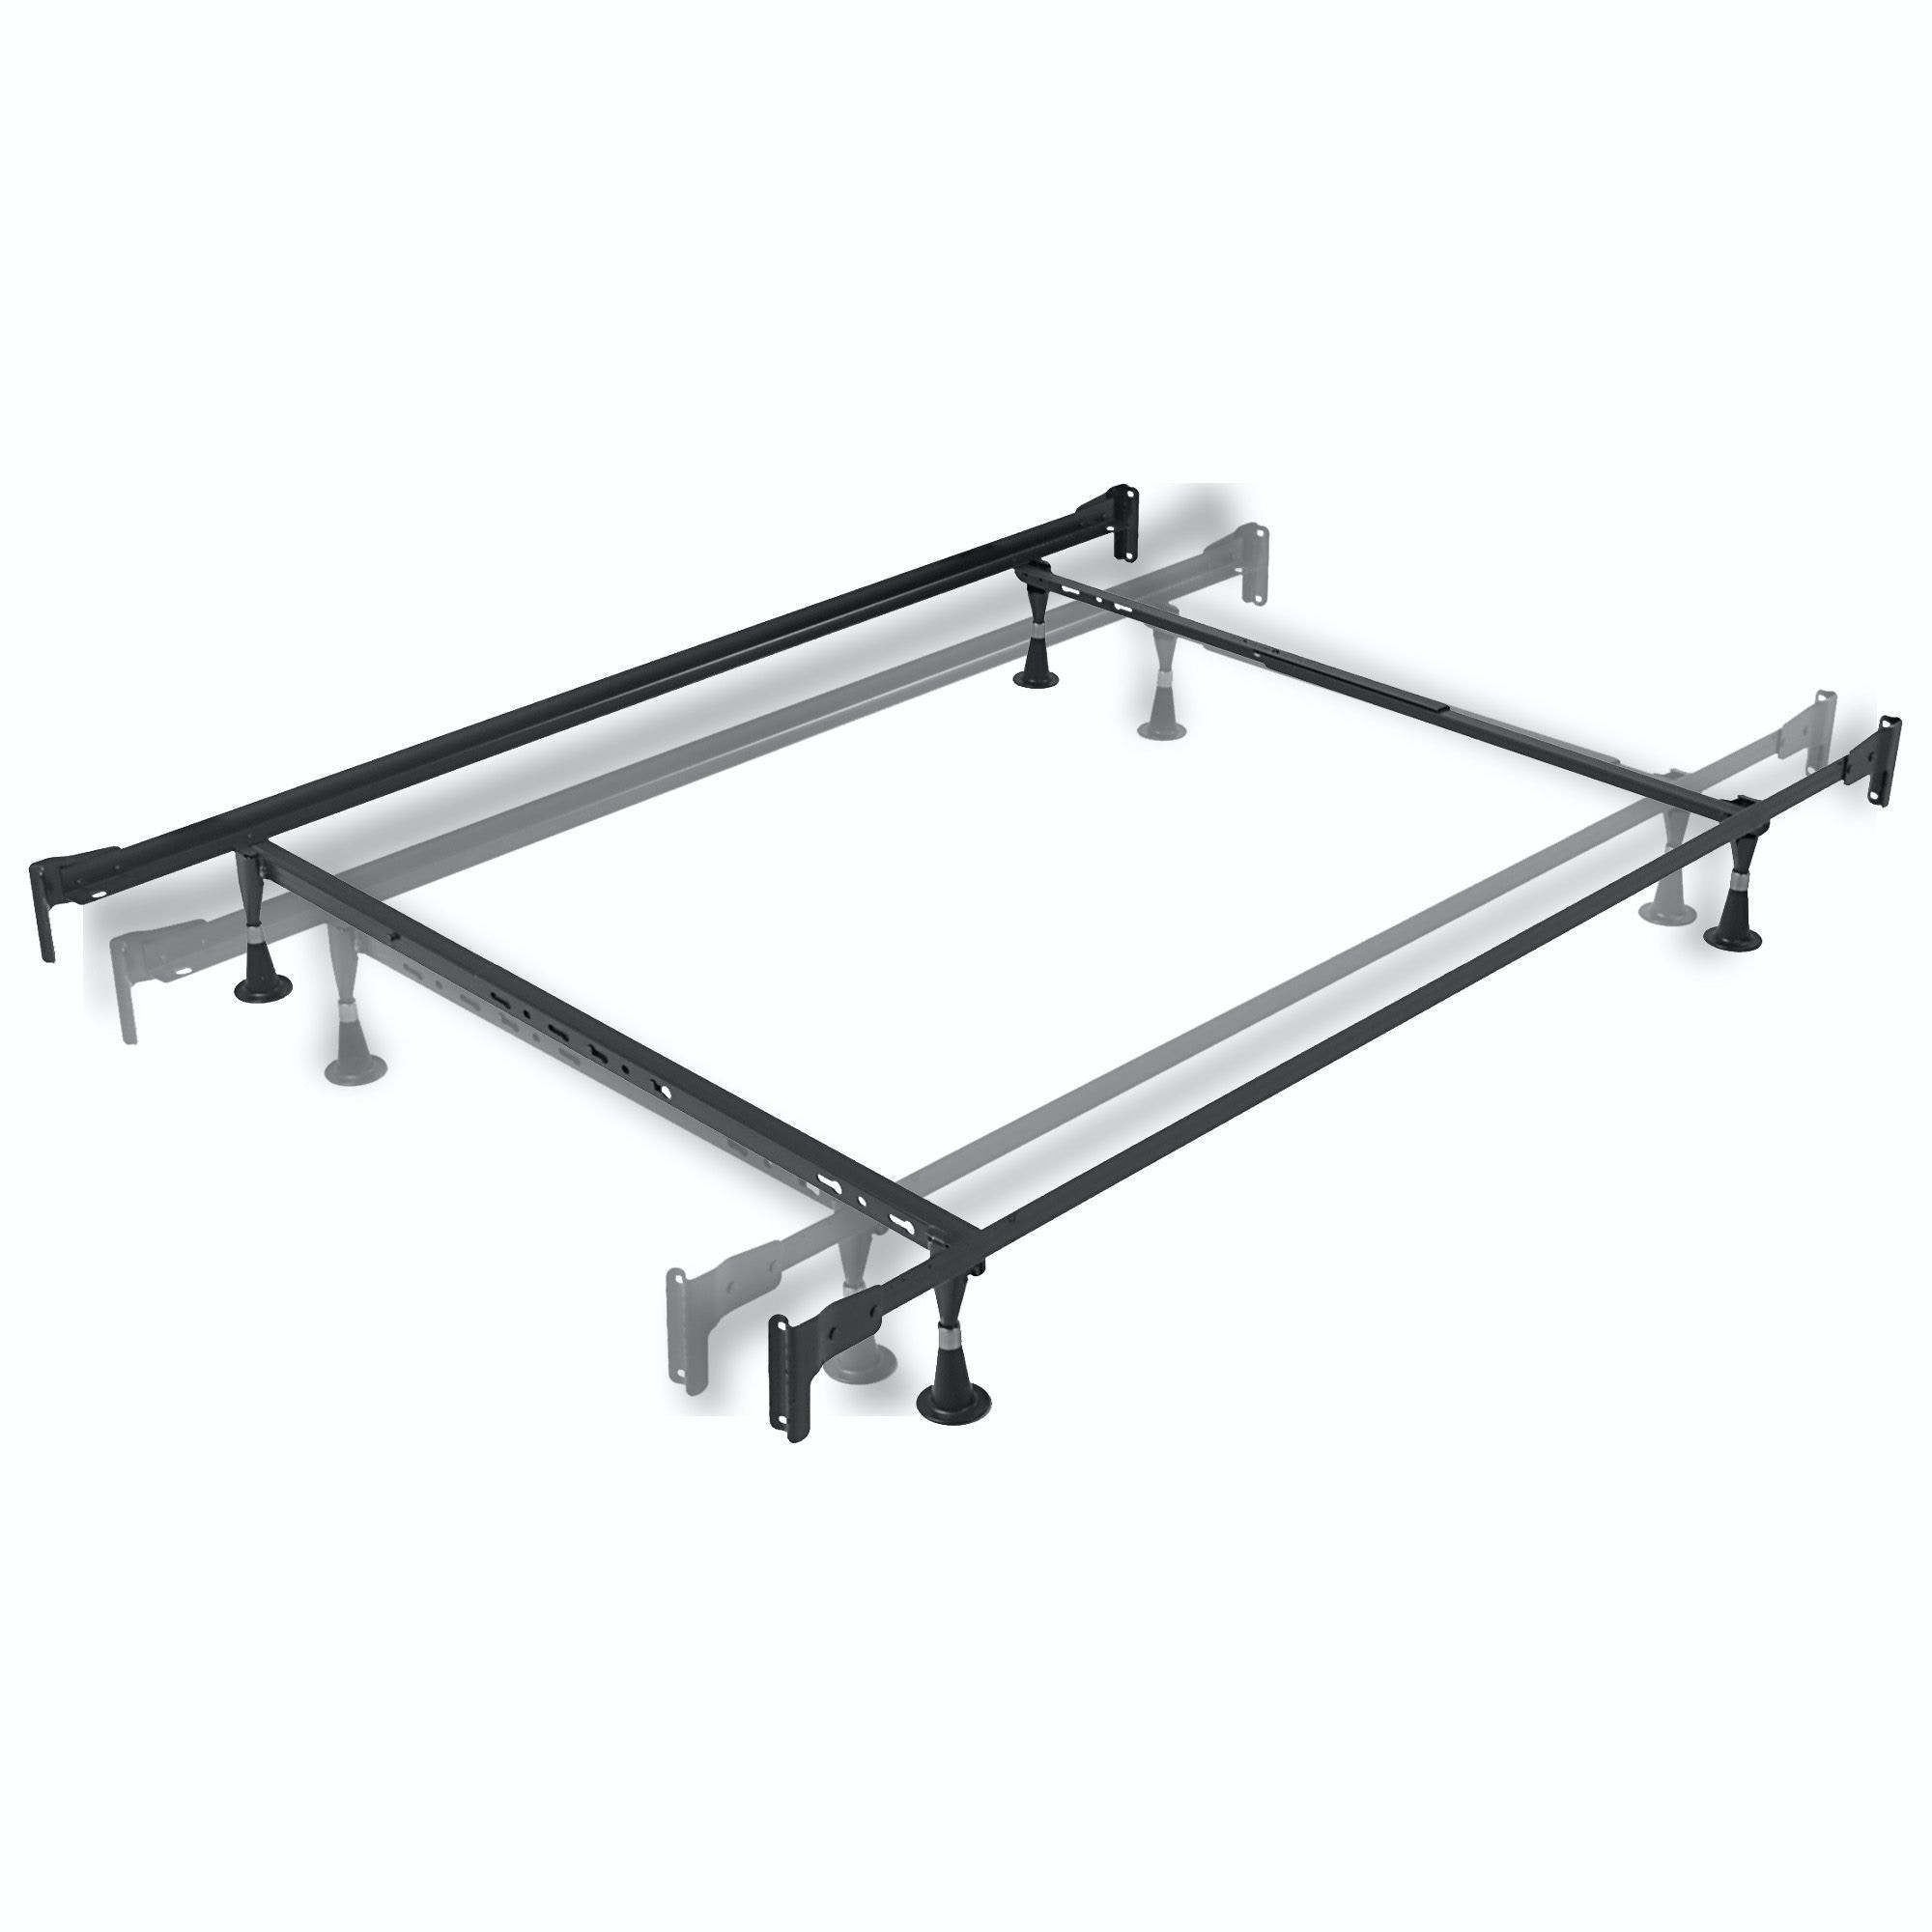 420008. Engineered Adjustable 834 Bed Frame ...